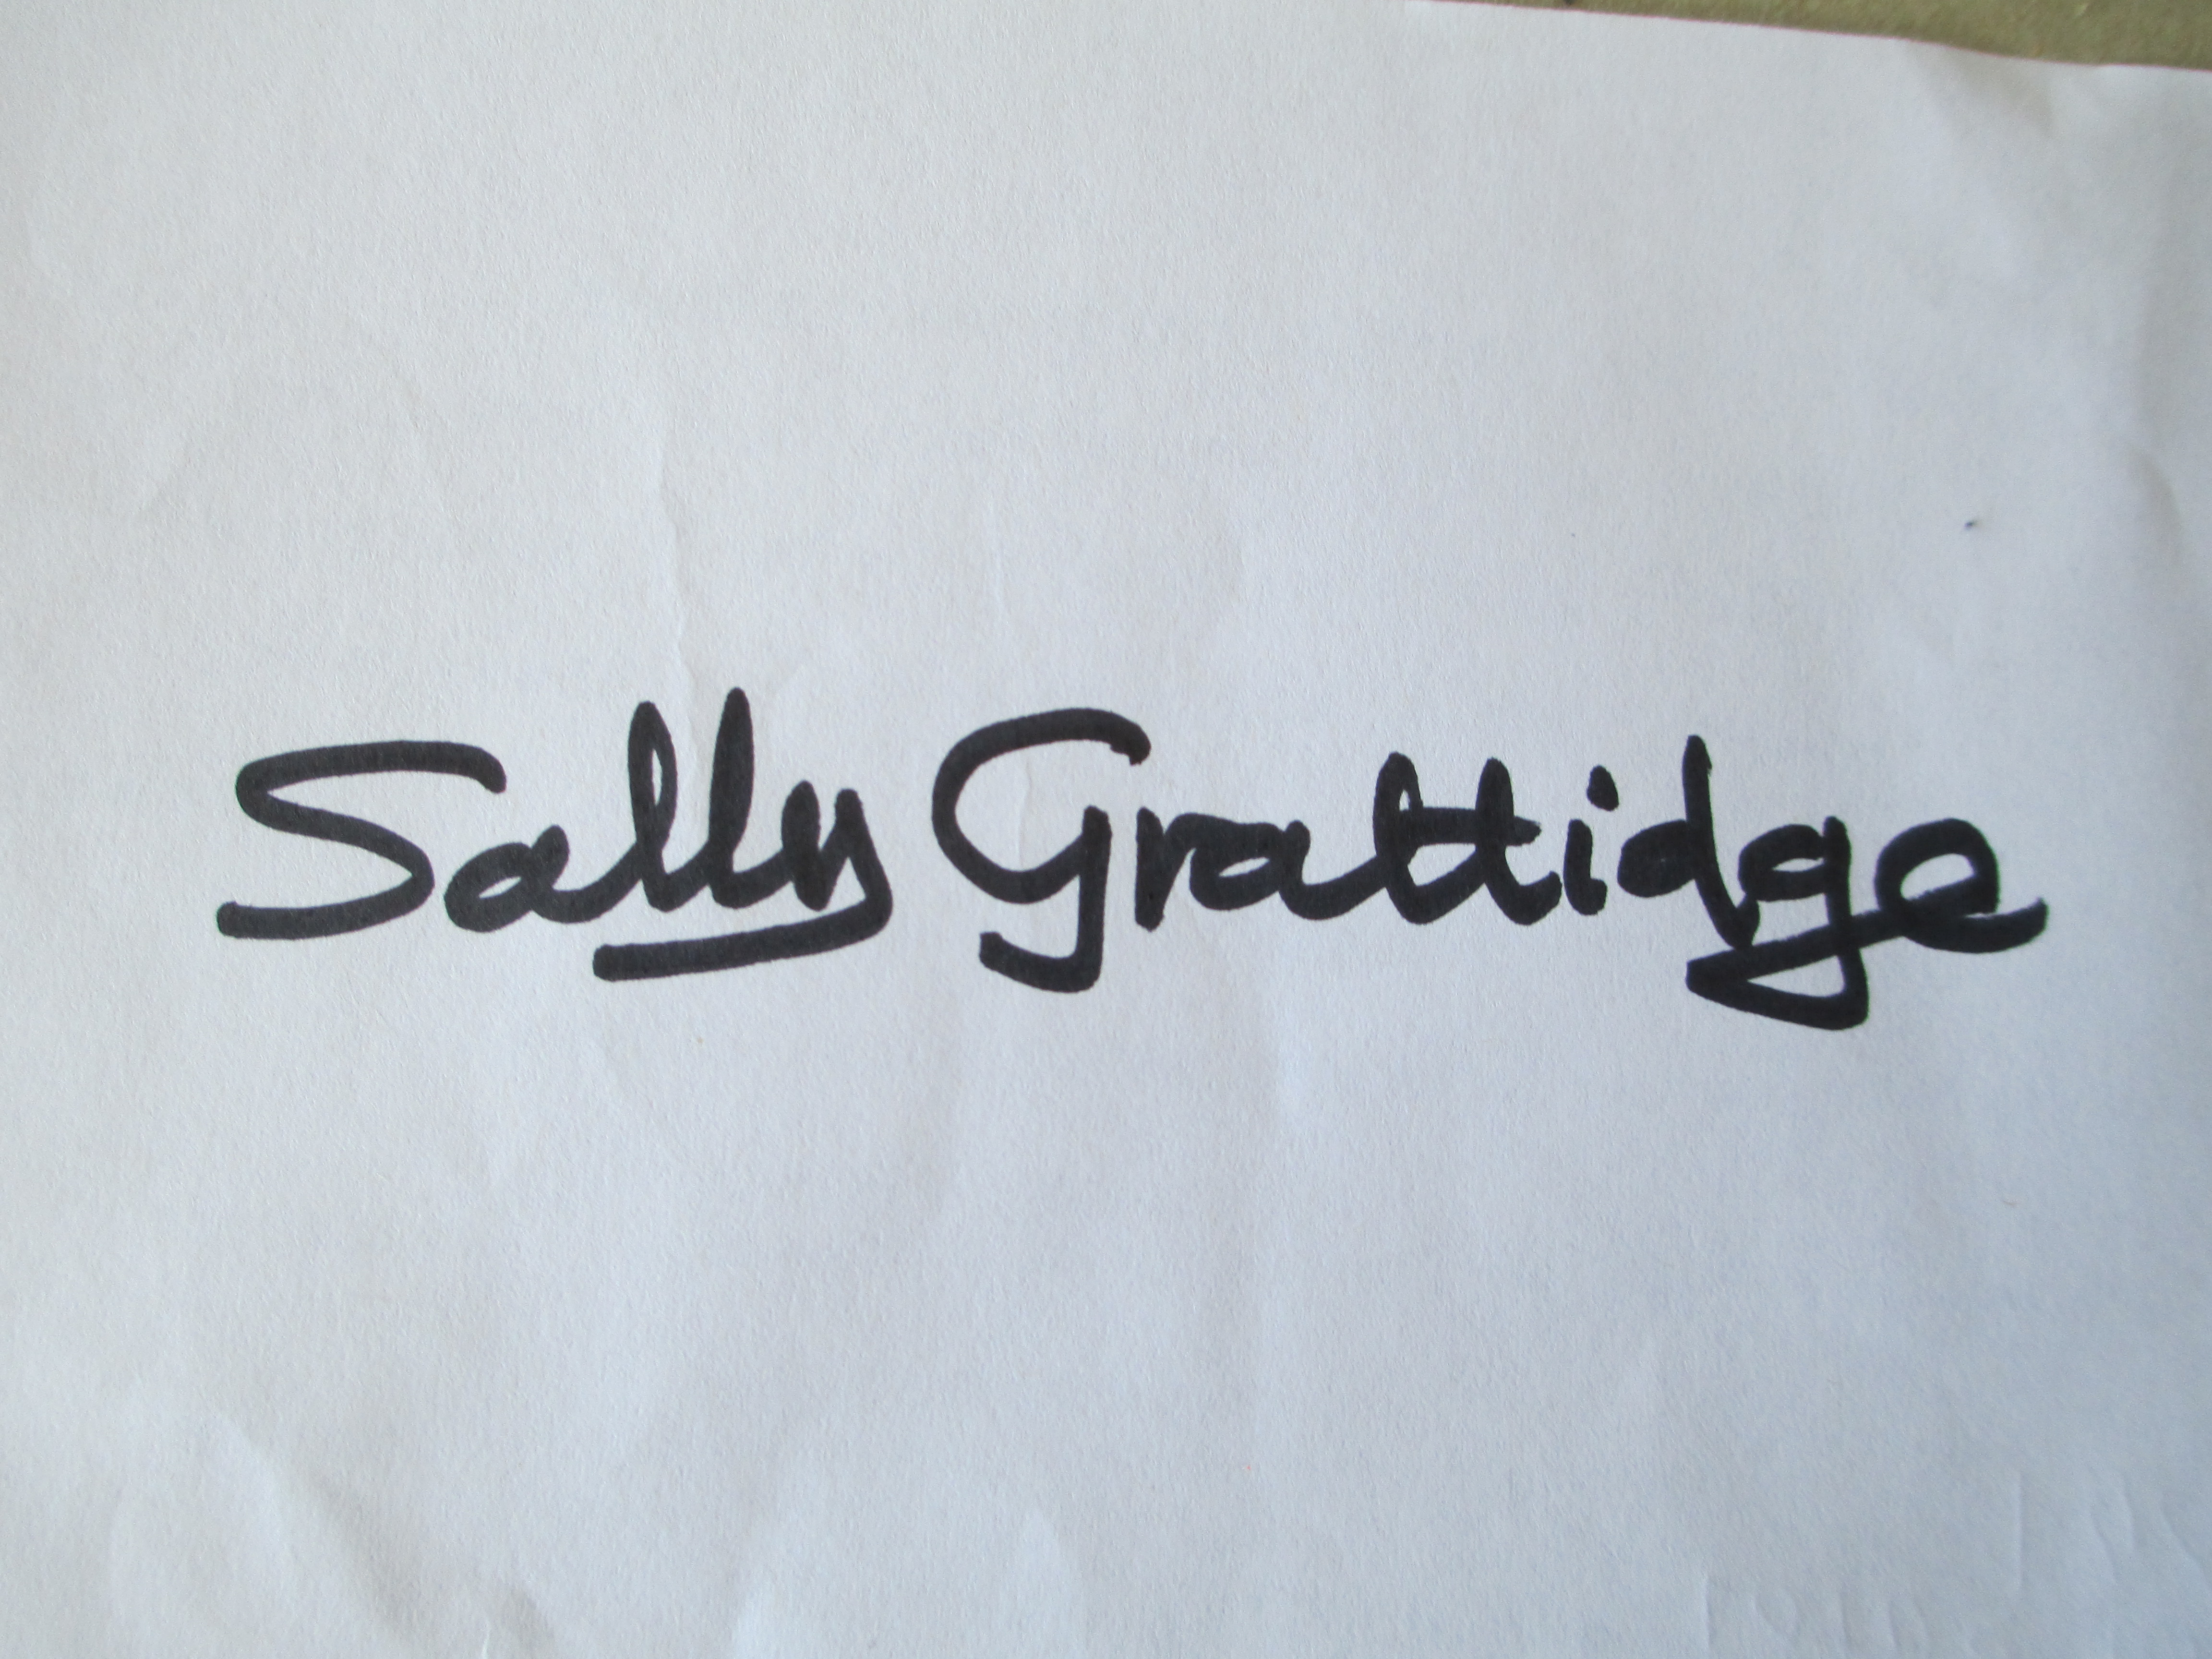 Sally Grattidge Signature